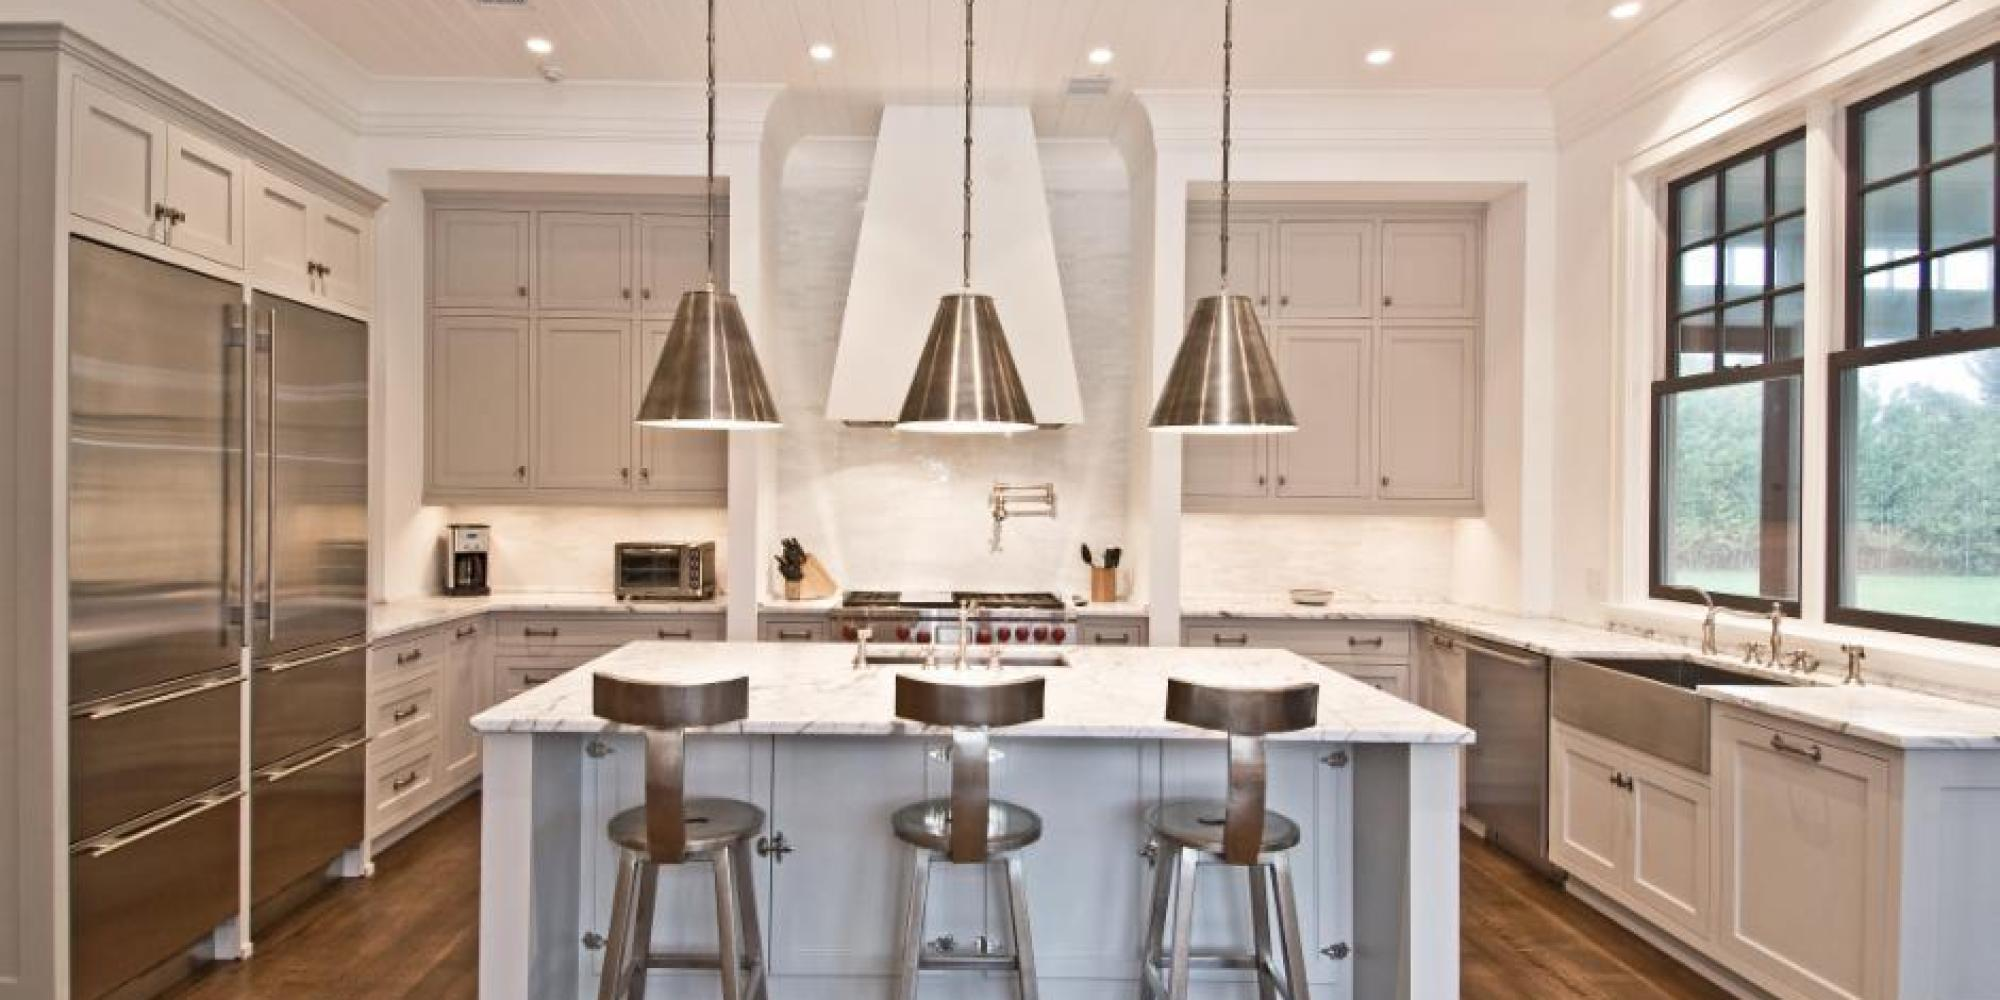 The Best Paint Colors For Every Type Of Kitchen HuffPost - Paint colors for kitchen cabinets and walls